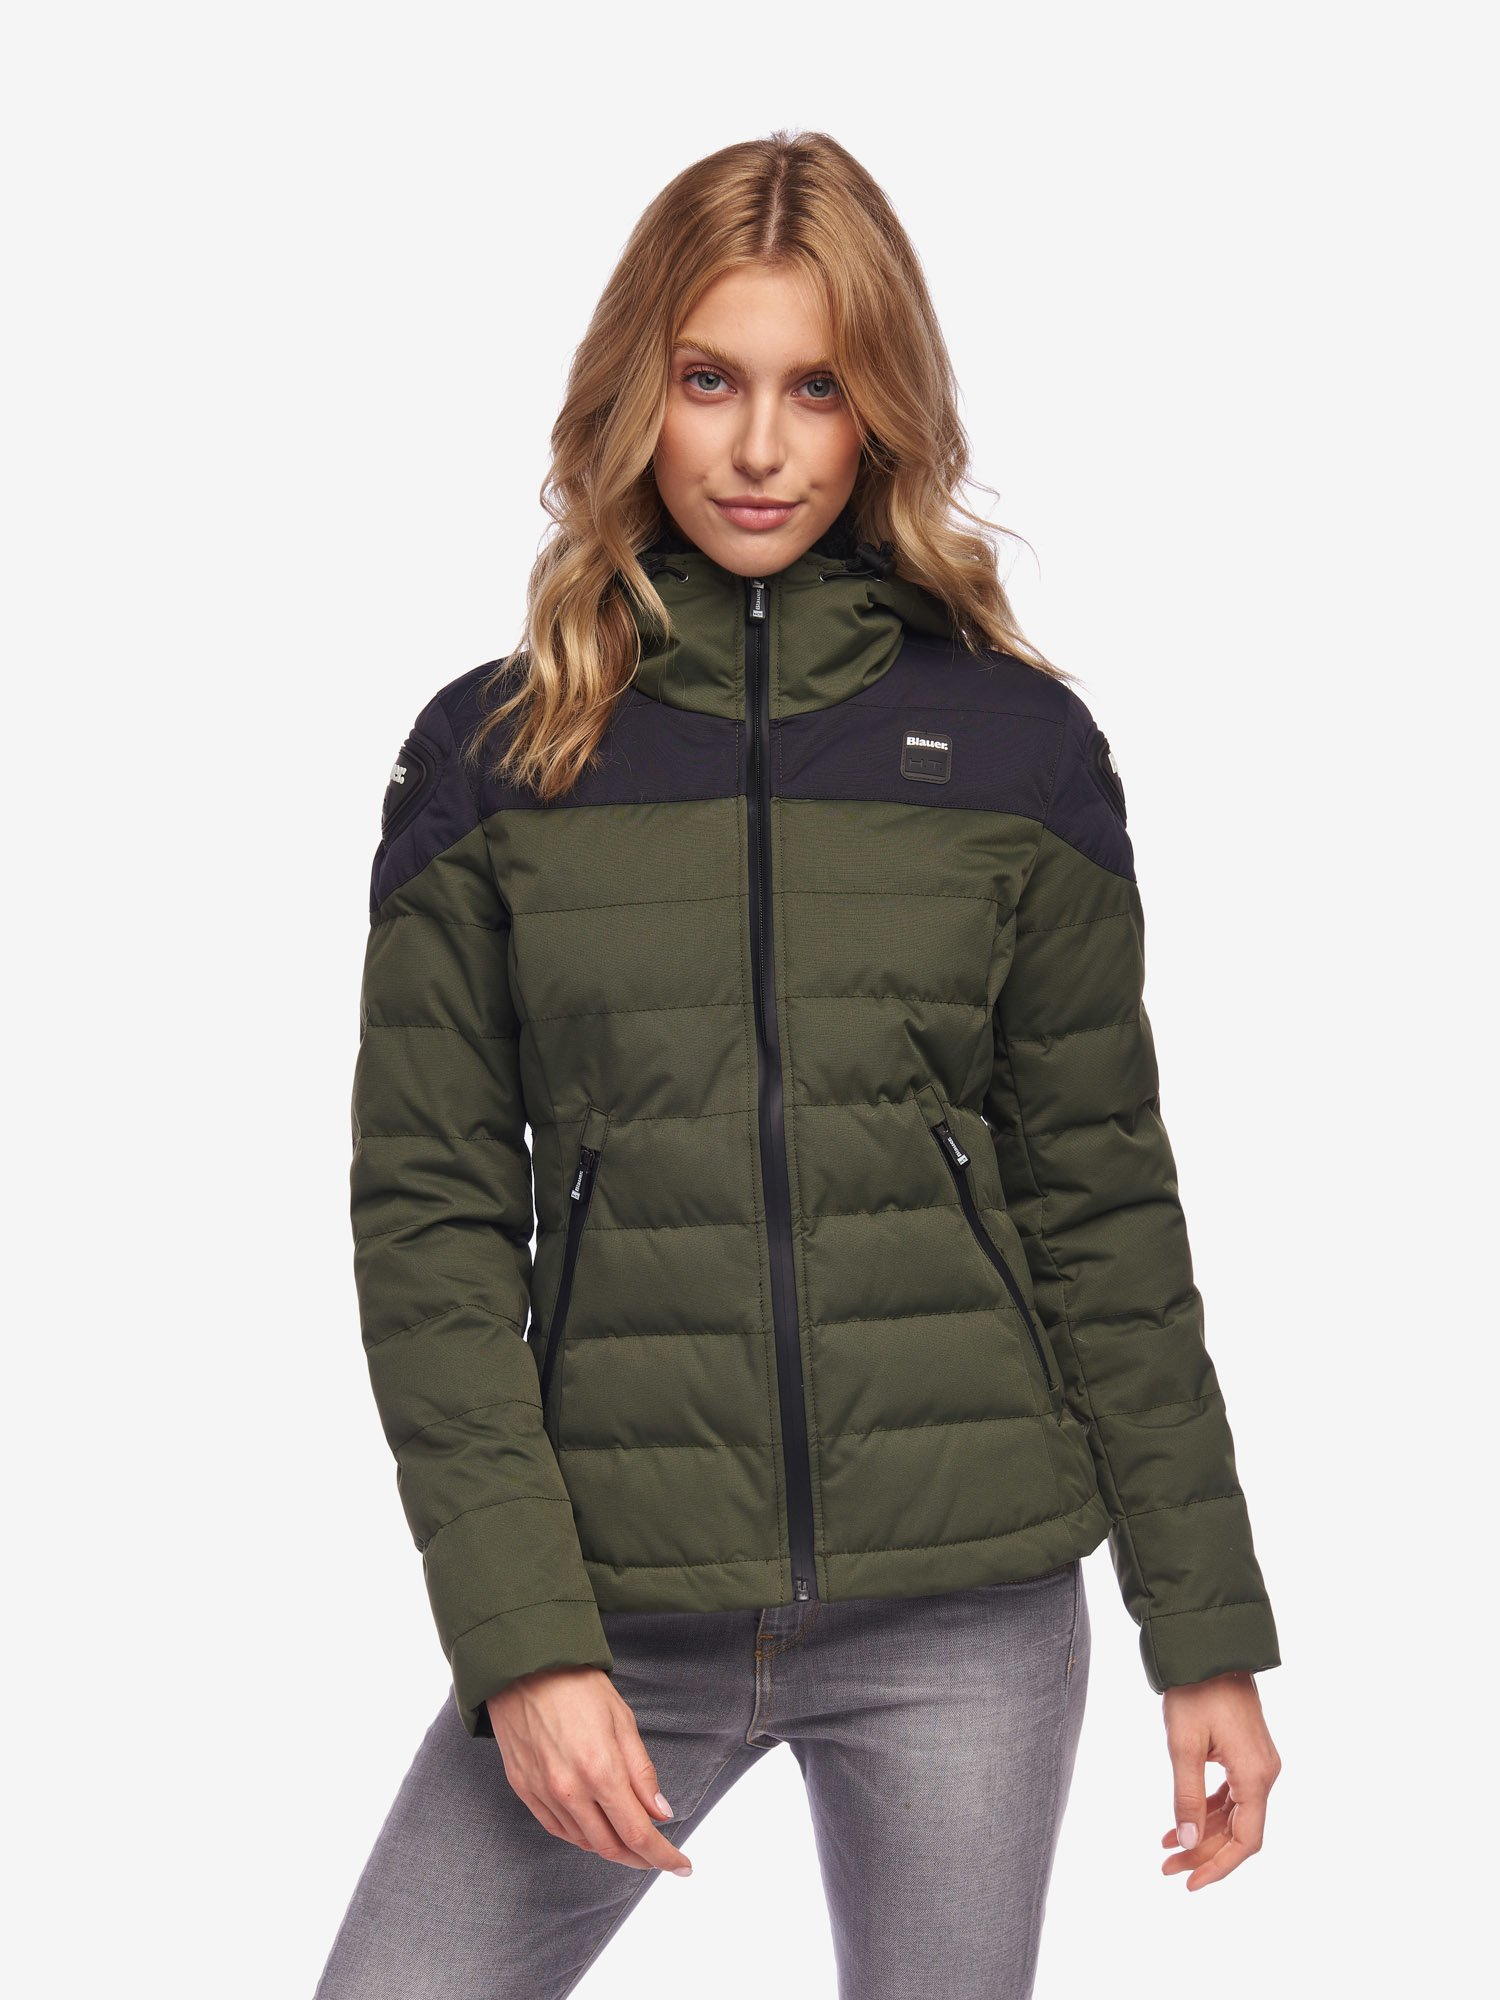 EASY WINTER MUJER 2.0 - Blauer